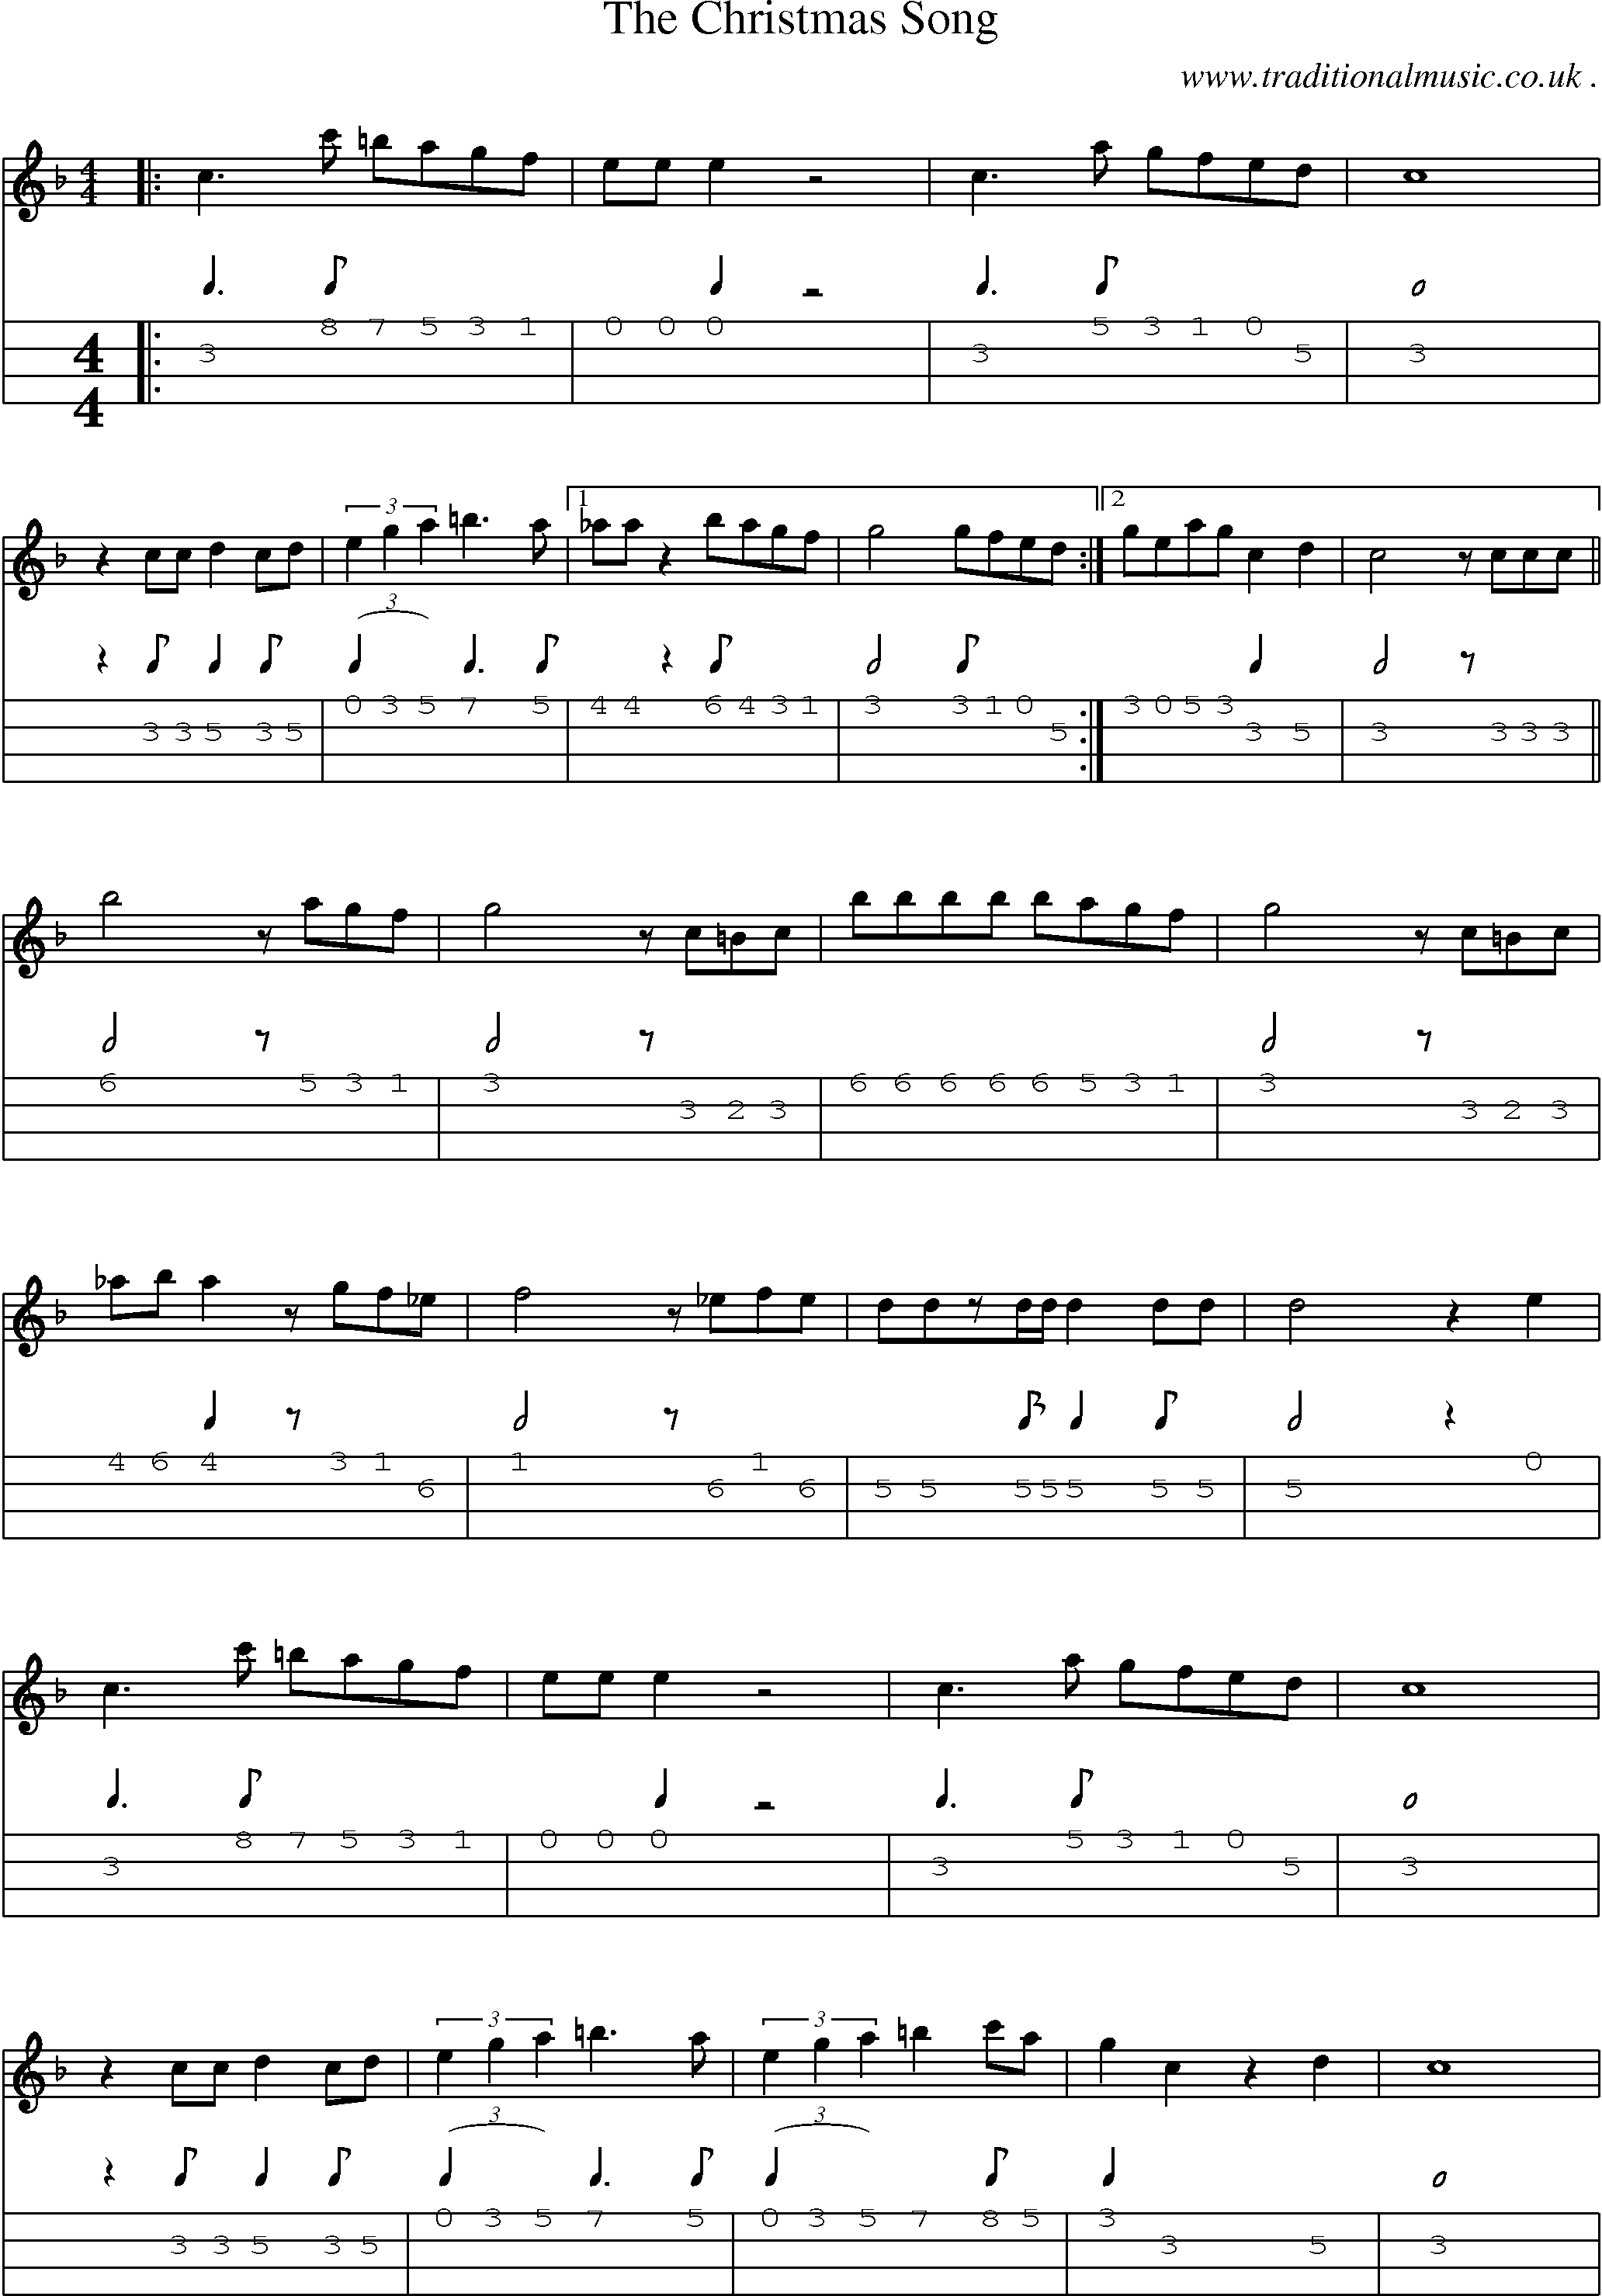 Common session tunes, Sheetmusic, Tabs for Mandolin, midi and mp3 for The Christmas Song